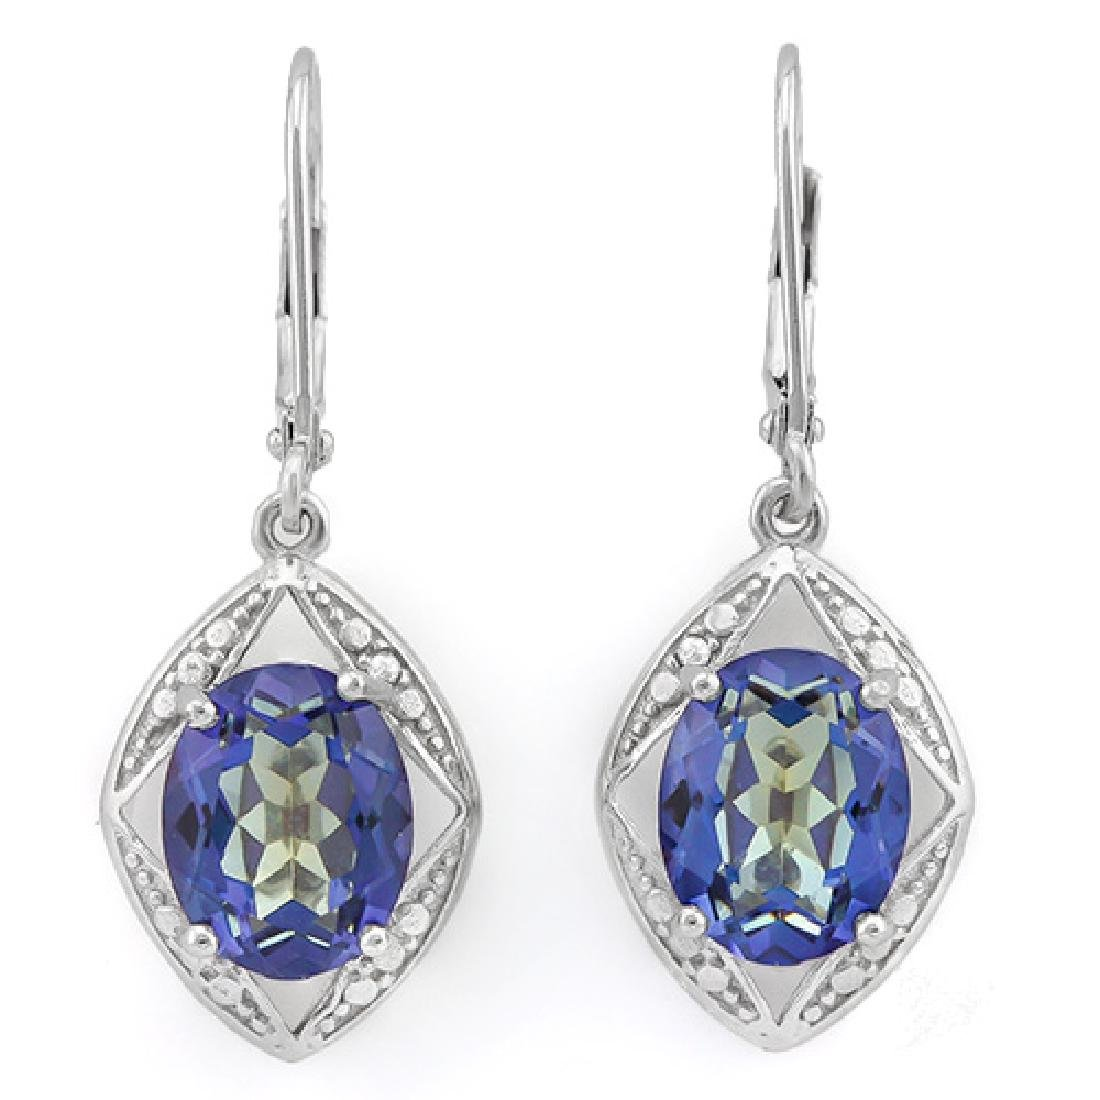 Blue Violet Mystic Topaz Dangle Earrings in Sterling